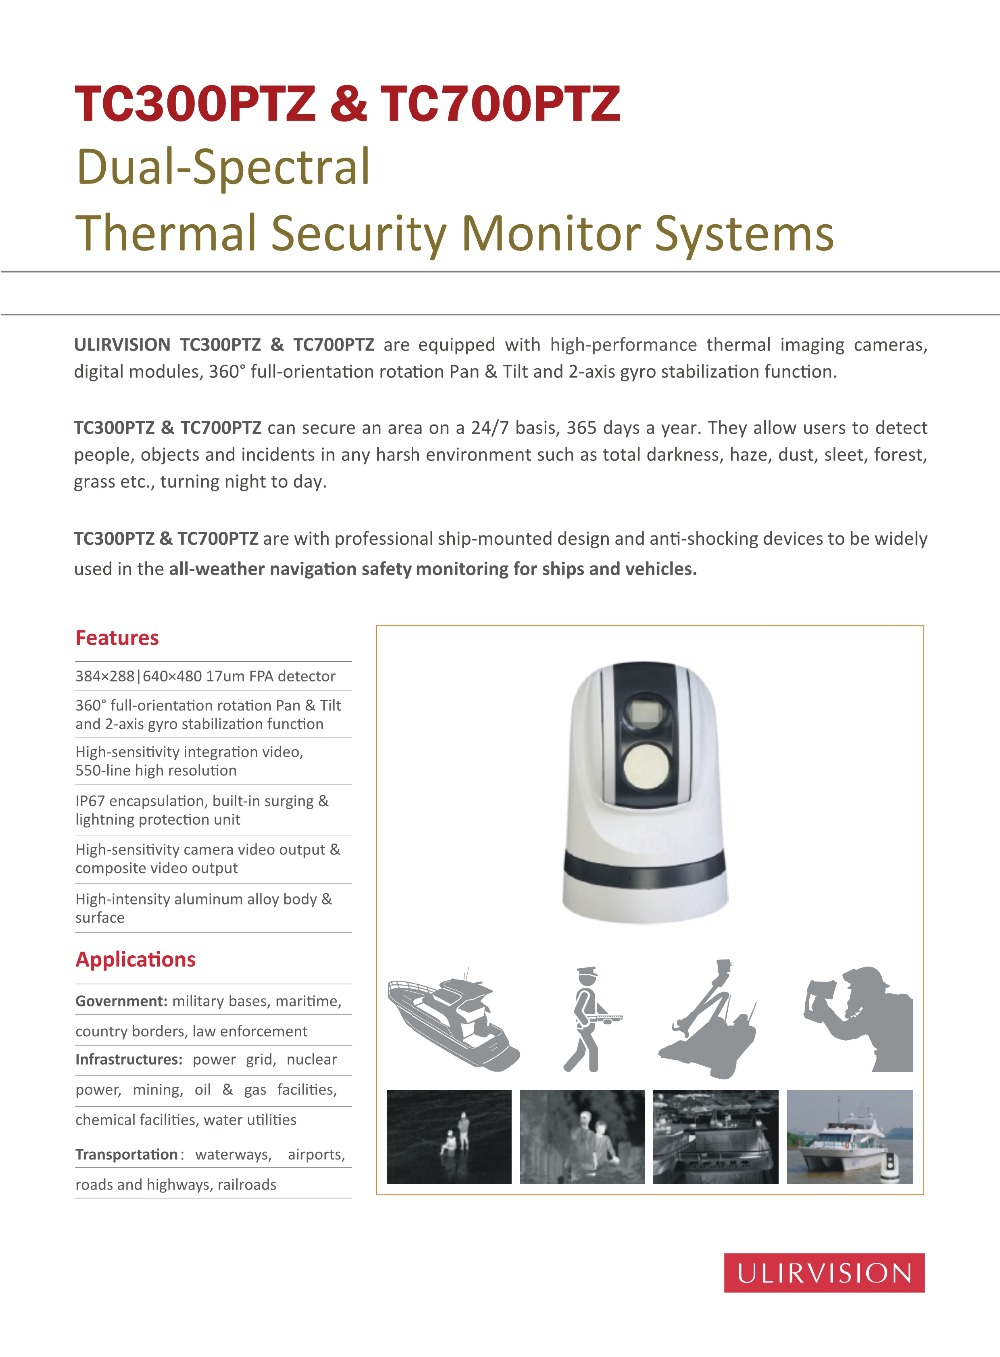 Thermal Security Camera TC300PTZ